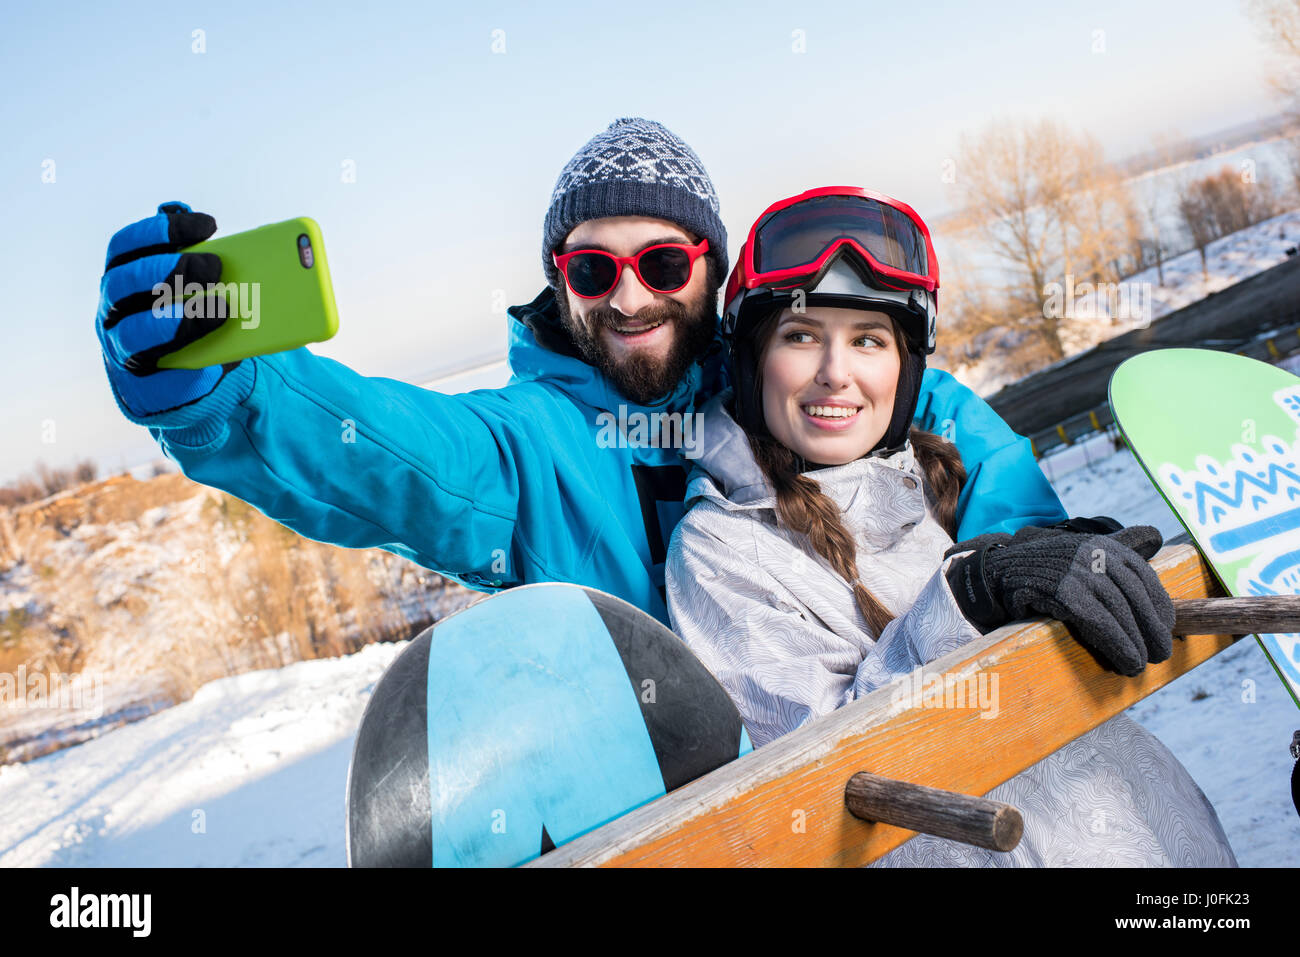 Young man and woman embracing and taking selfie with snowboars - Stock Image